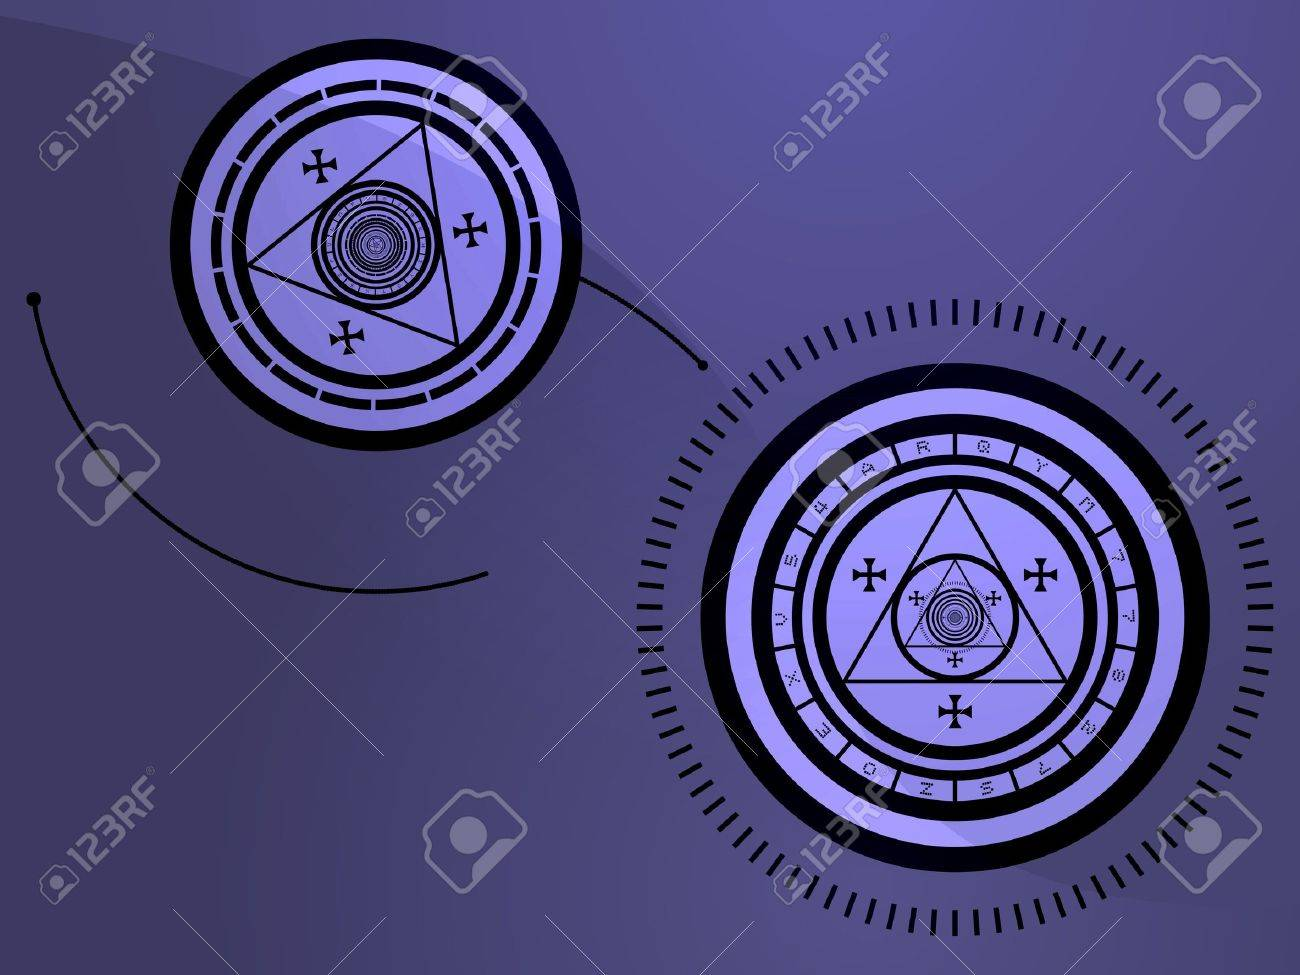 Wierd arcane symbols that look strange and occult Stock Photo - 3414140